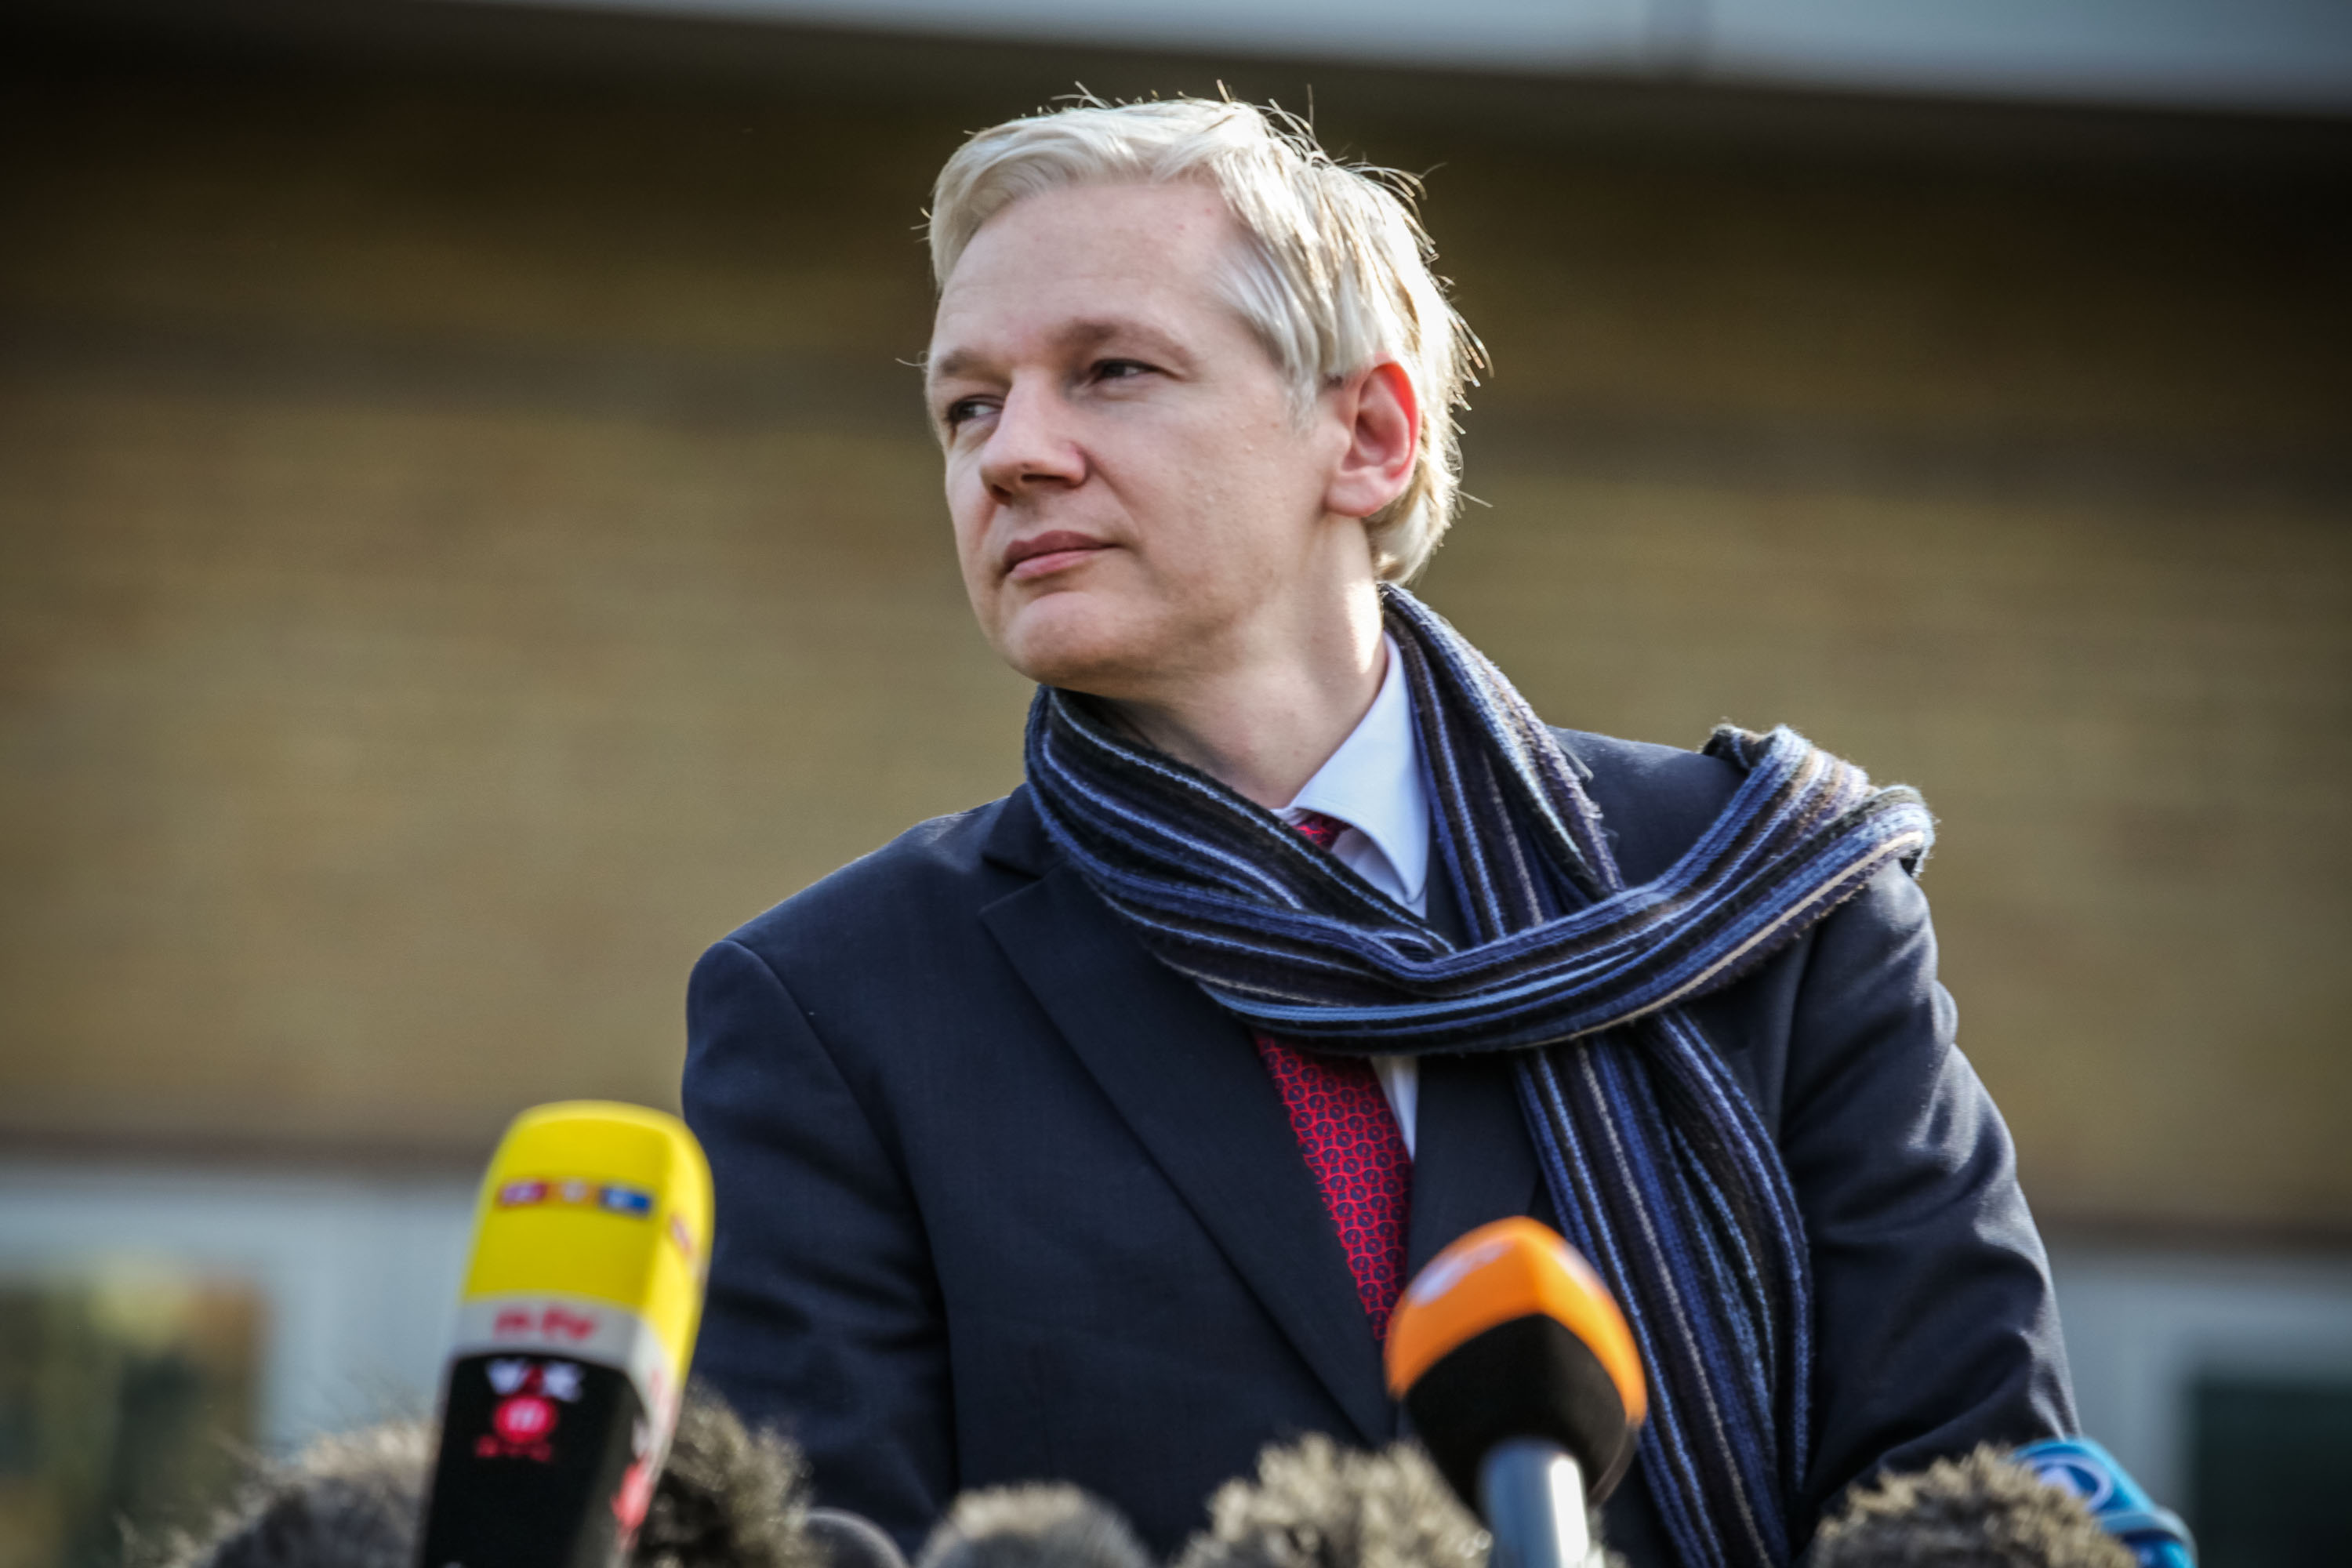 Video: Assange backed by UN, but he's not free yet